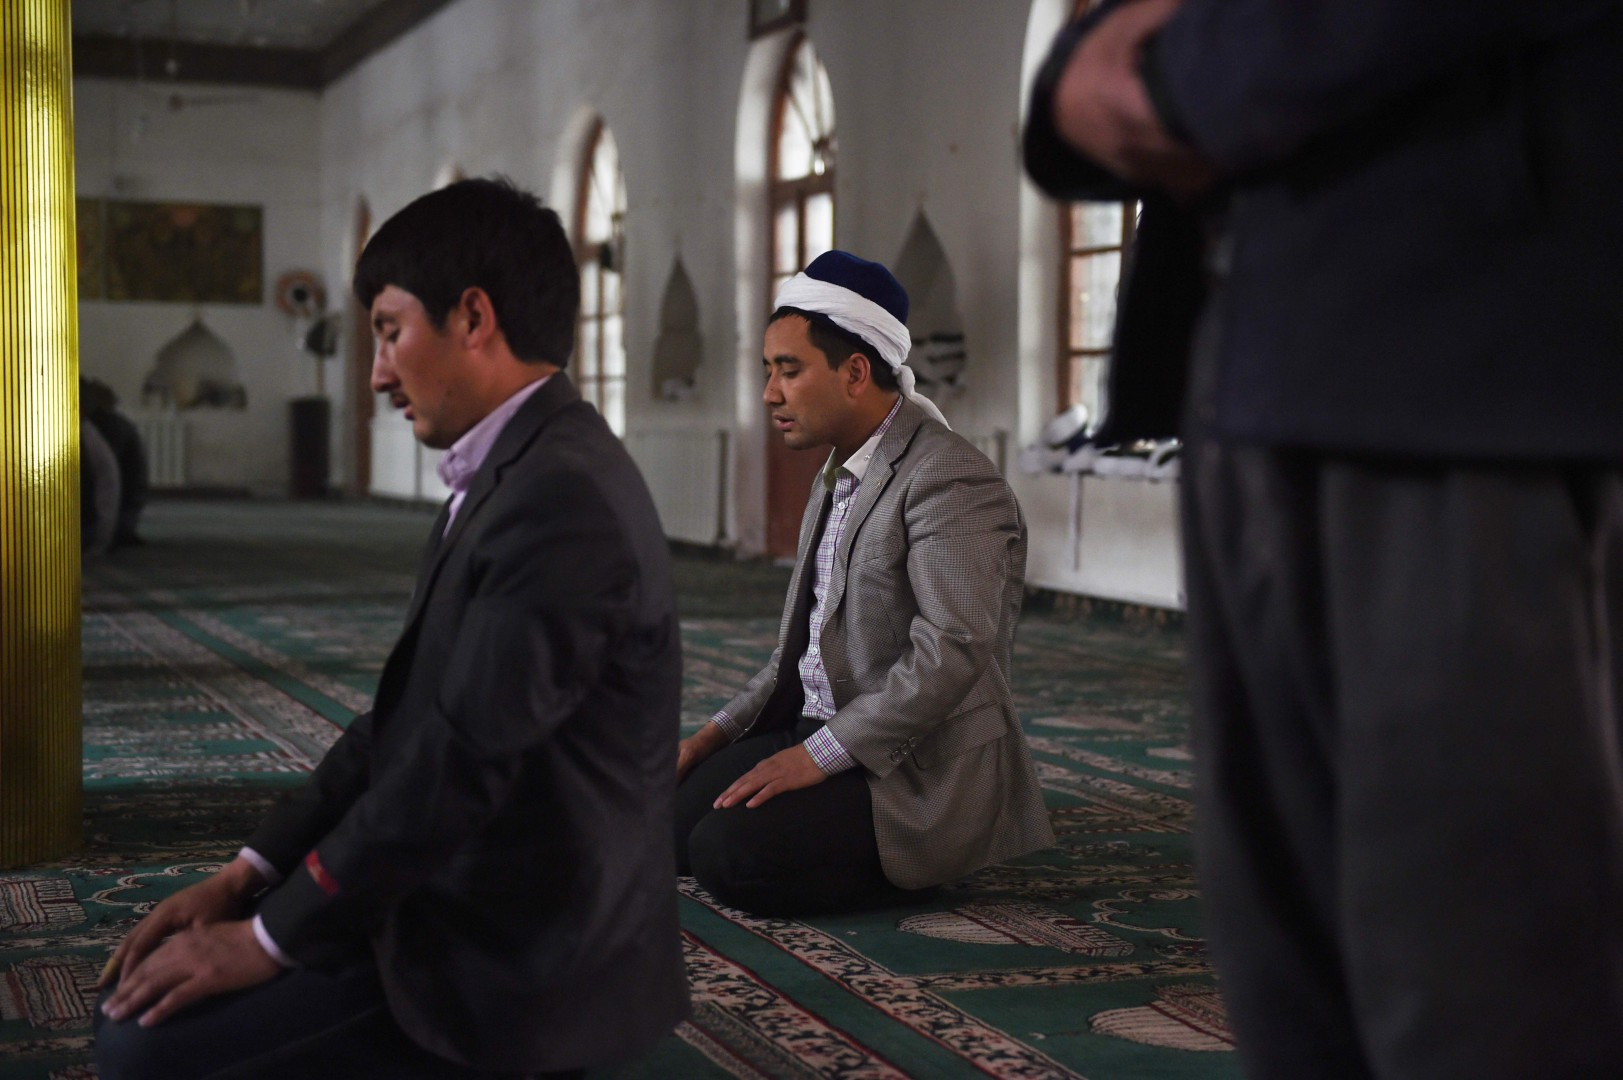 "This photo taken on April 16, 2015 shows Uighur men praying in a mosque in Hotan, in China's western Xinjiang region. - The prefecture in the region's south has seen an explosion in the construction of ìvocational training"" centres for the region's Muslim minorities. But the centres have come under international scrutiny, with rights activists describing them as political re-education camps holding as many as one million ethnic Uighurs and other Muslim minorities. (Photo by Greg Baker / AFP) / TO GO WITH China-politics-rights-Xinjiang, FOCUS by Ben Dooley"